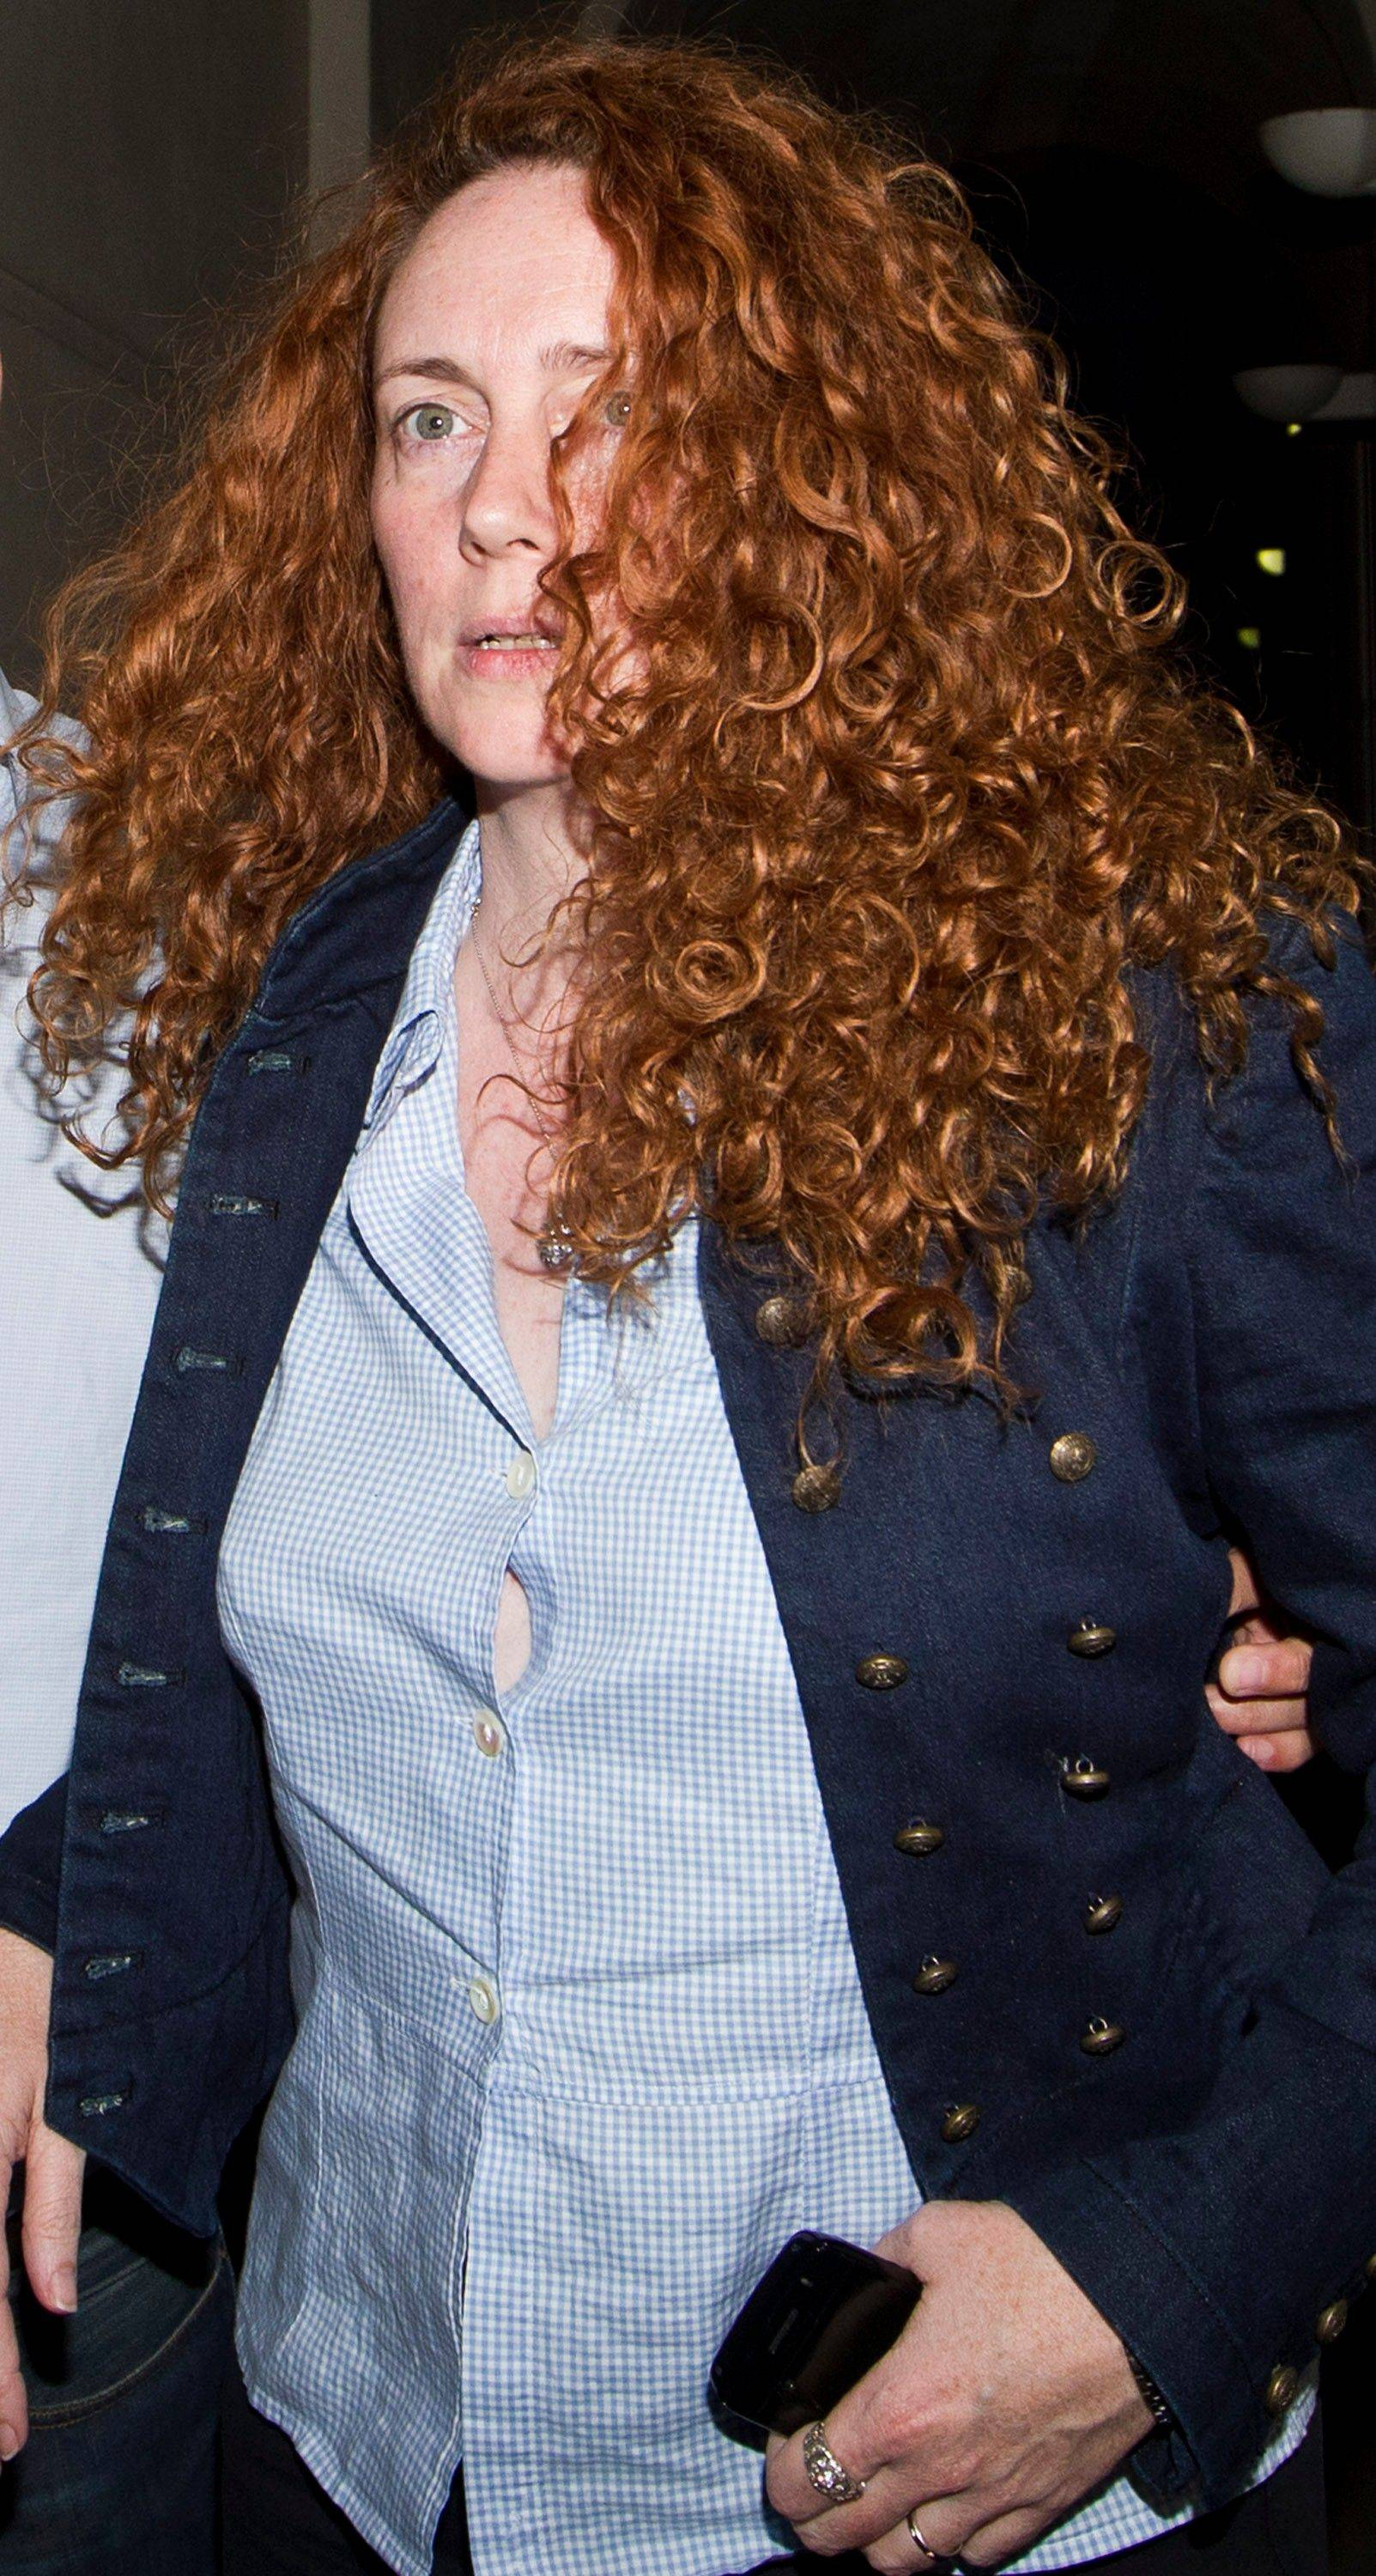 Sky television sources reported on Sunday that former Chief executive of News International, Rebekah Brooks had been arrested by police investigating a phone hacking and corruption scandal that has engulfed Rupert Murdoch�s British media company. Scotland Yard confirmed that a 43 year old woman had been arrested.